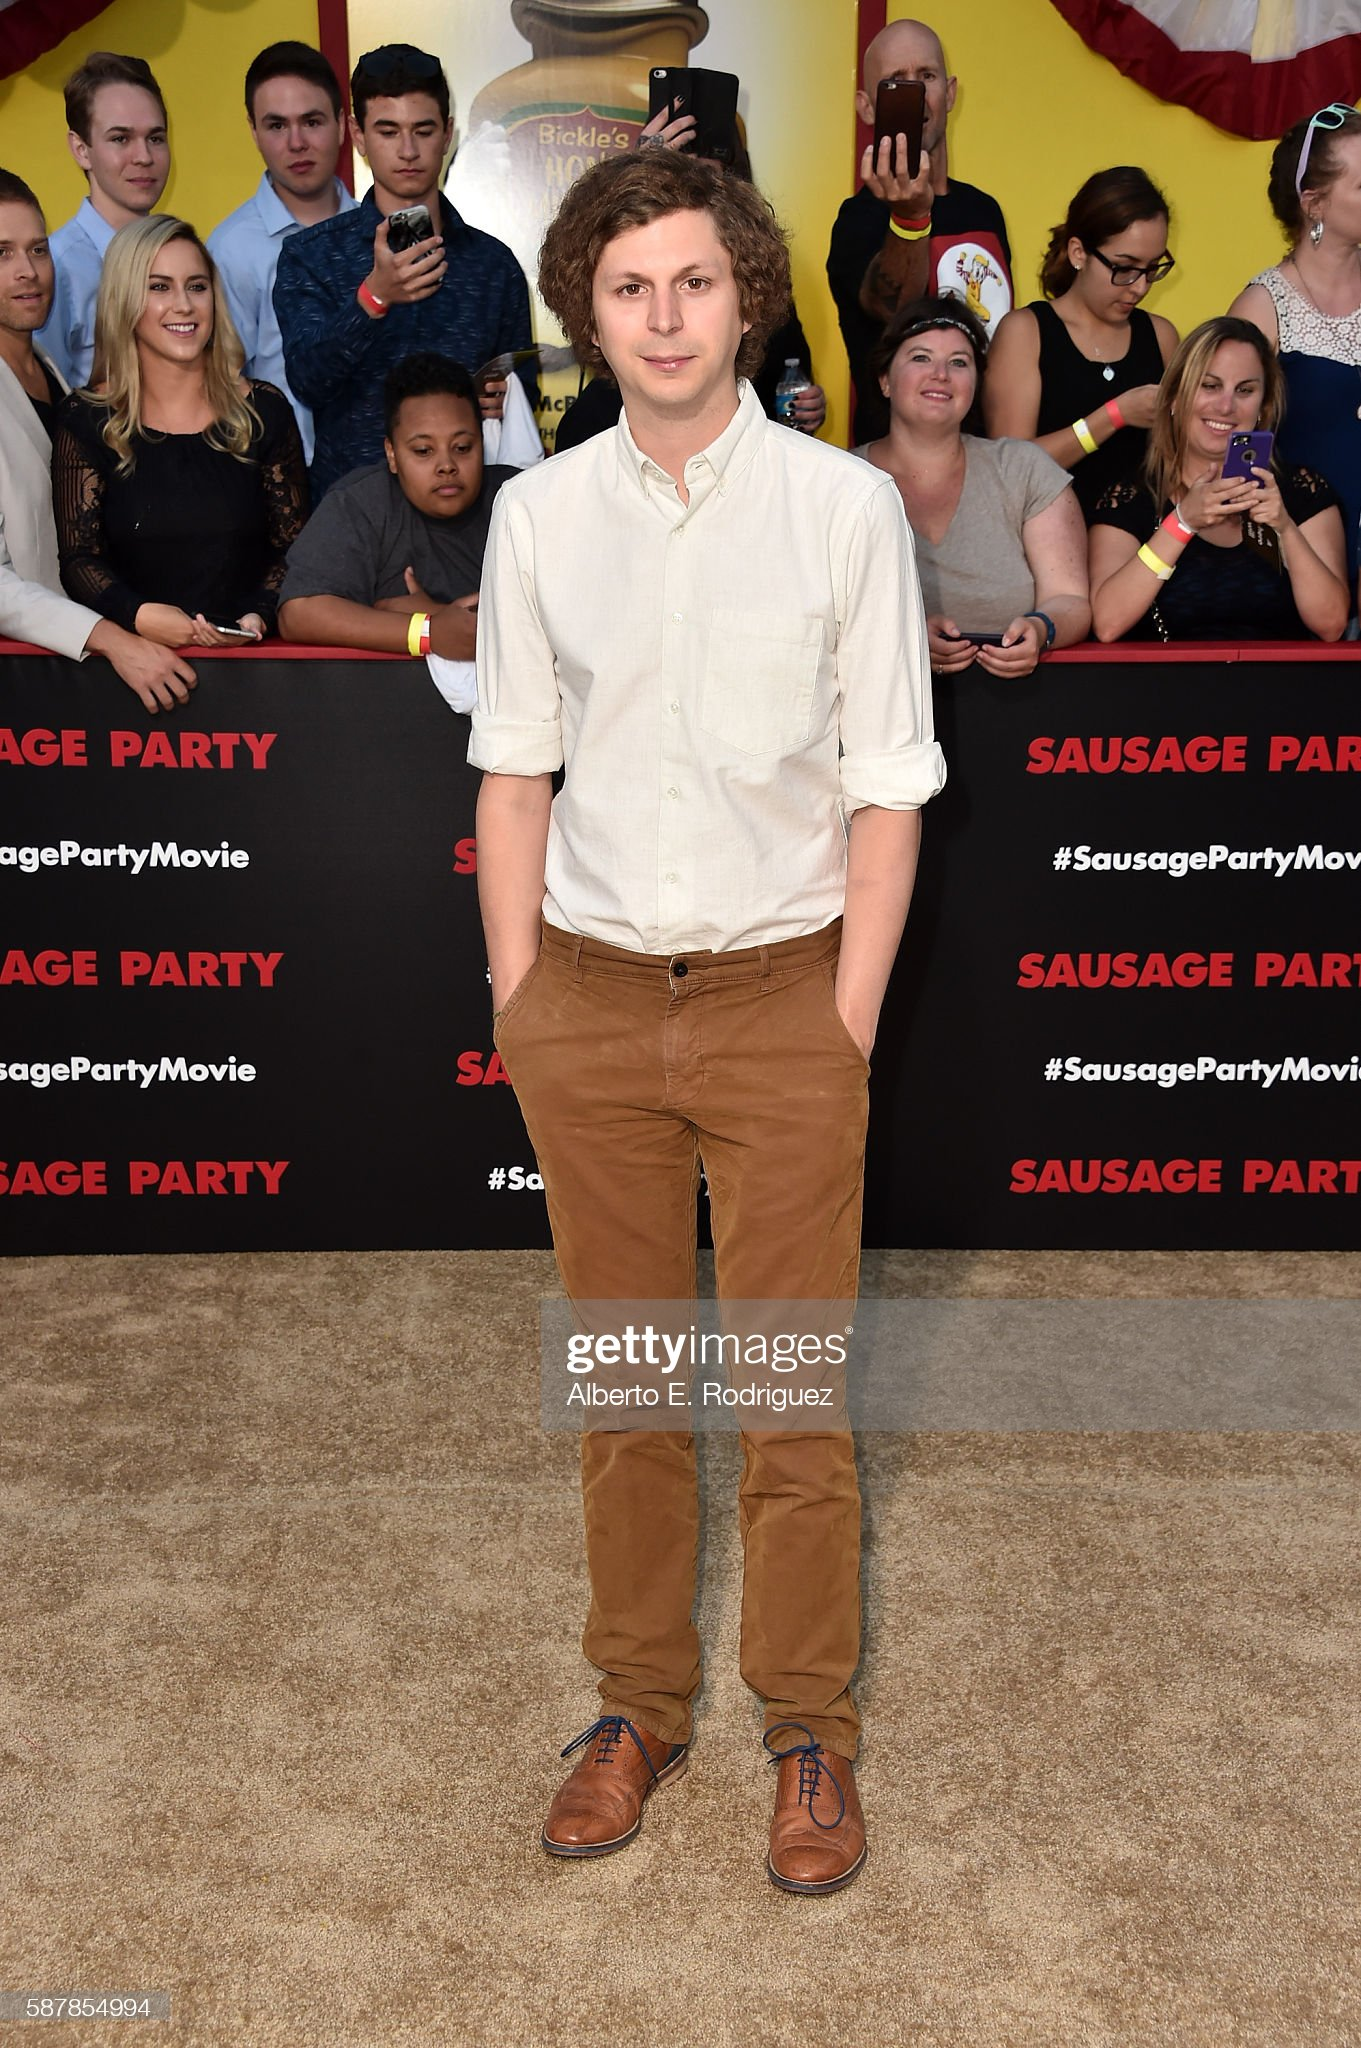 ¿Cuánto mide Michael Cera? - Altura - Real height Actor-michael-cera-attends-the-premiere-of-sonys-sausage-party-at-picture-id587854994?s=2048x2048